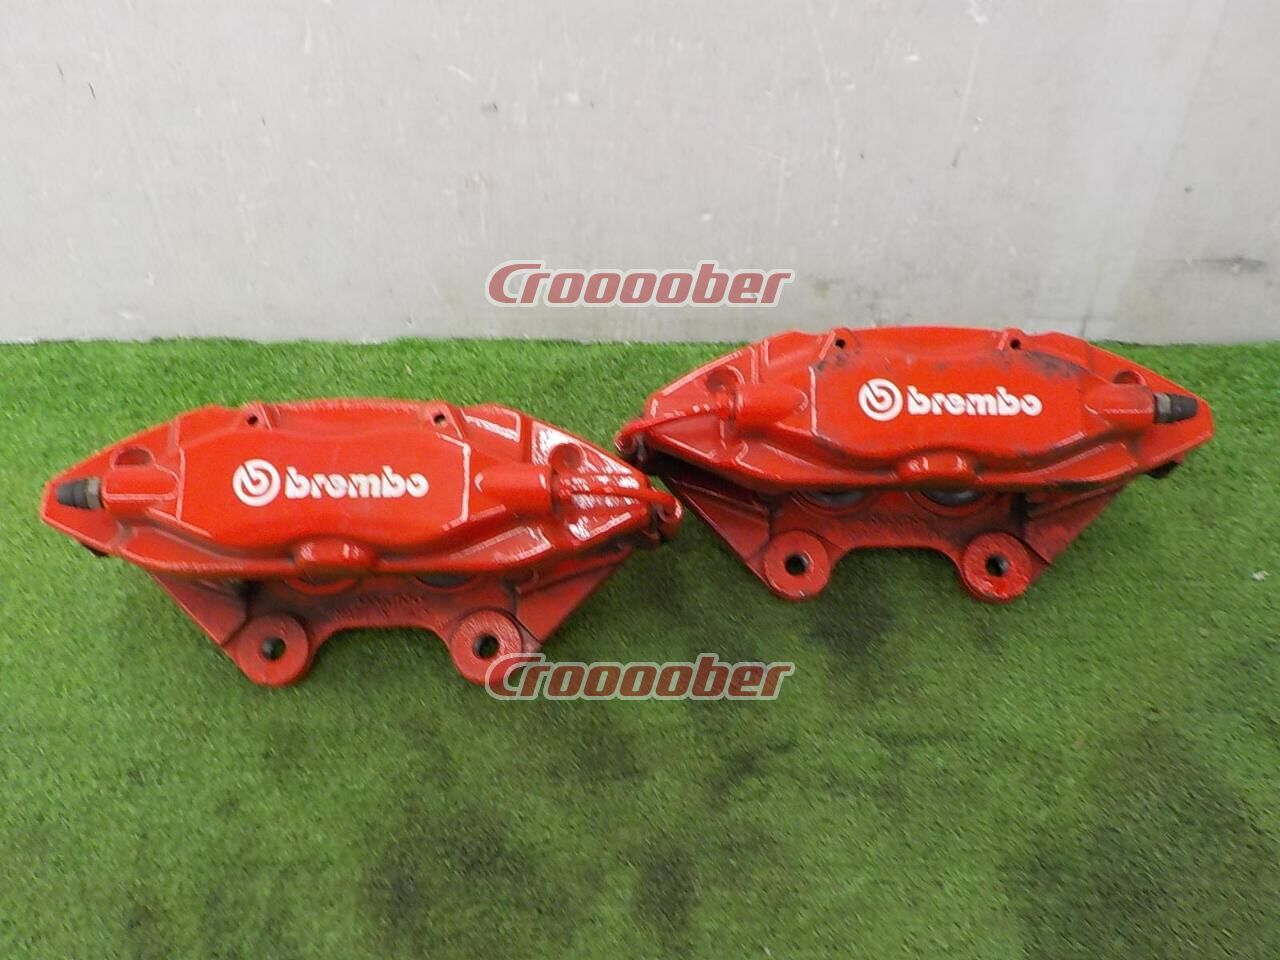 Chrysler Jeep Grand Cherokee Genuine 4pot Brembo Caliper Calipers Croooober